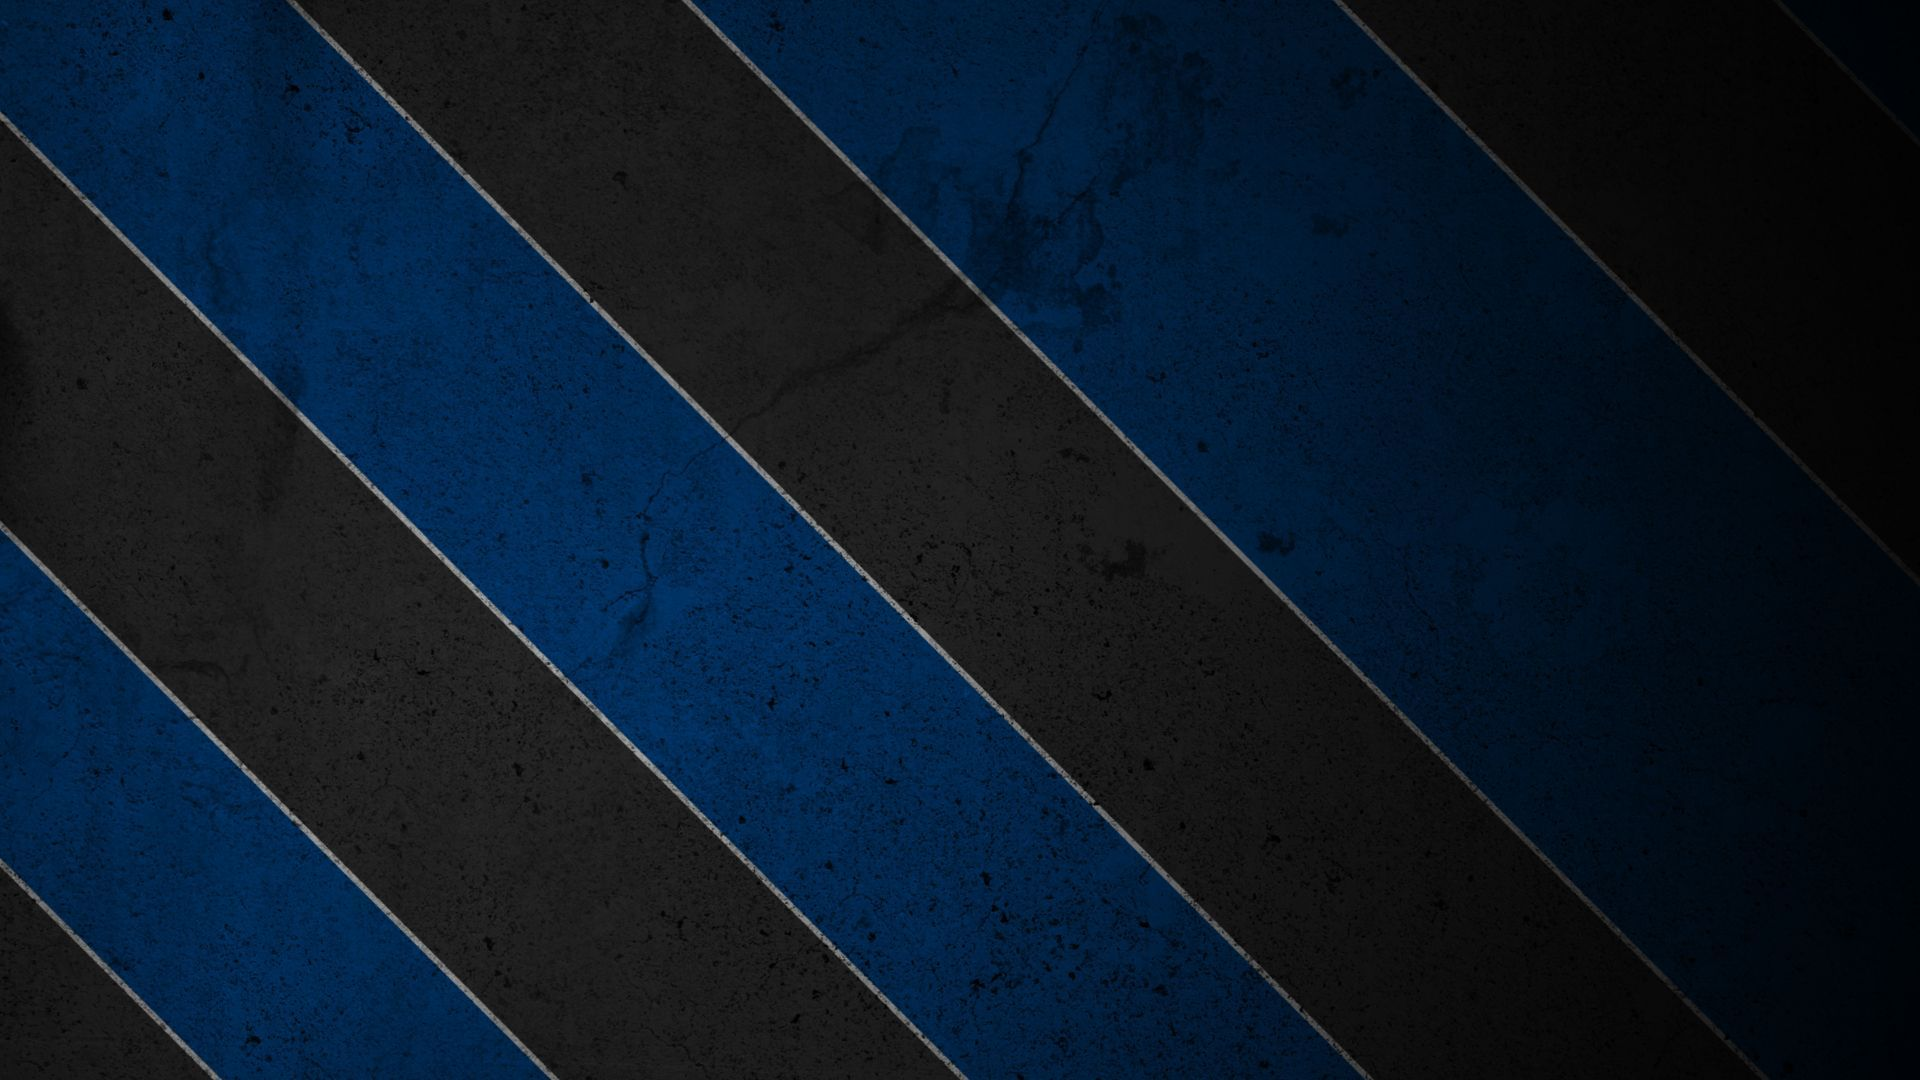 Black and blue stripes wallpaper 18553 1920x1080